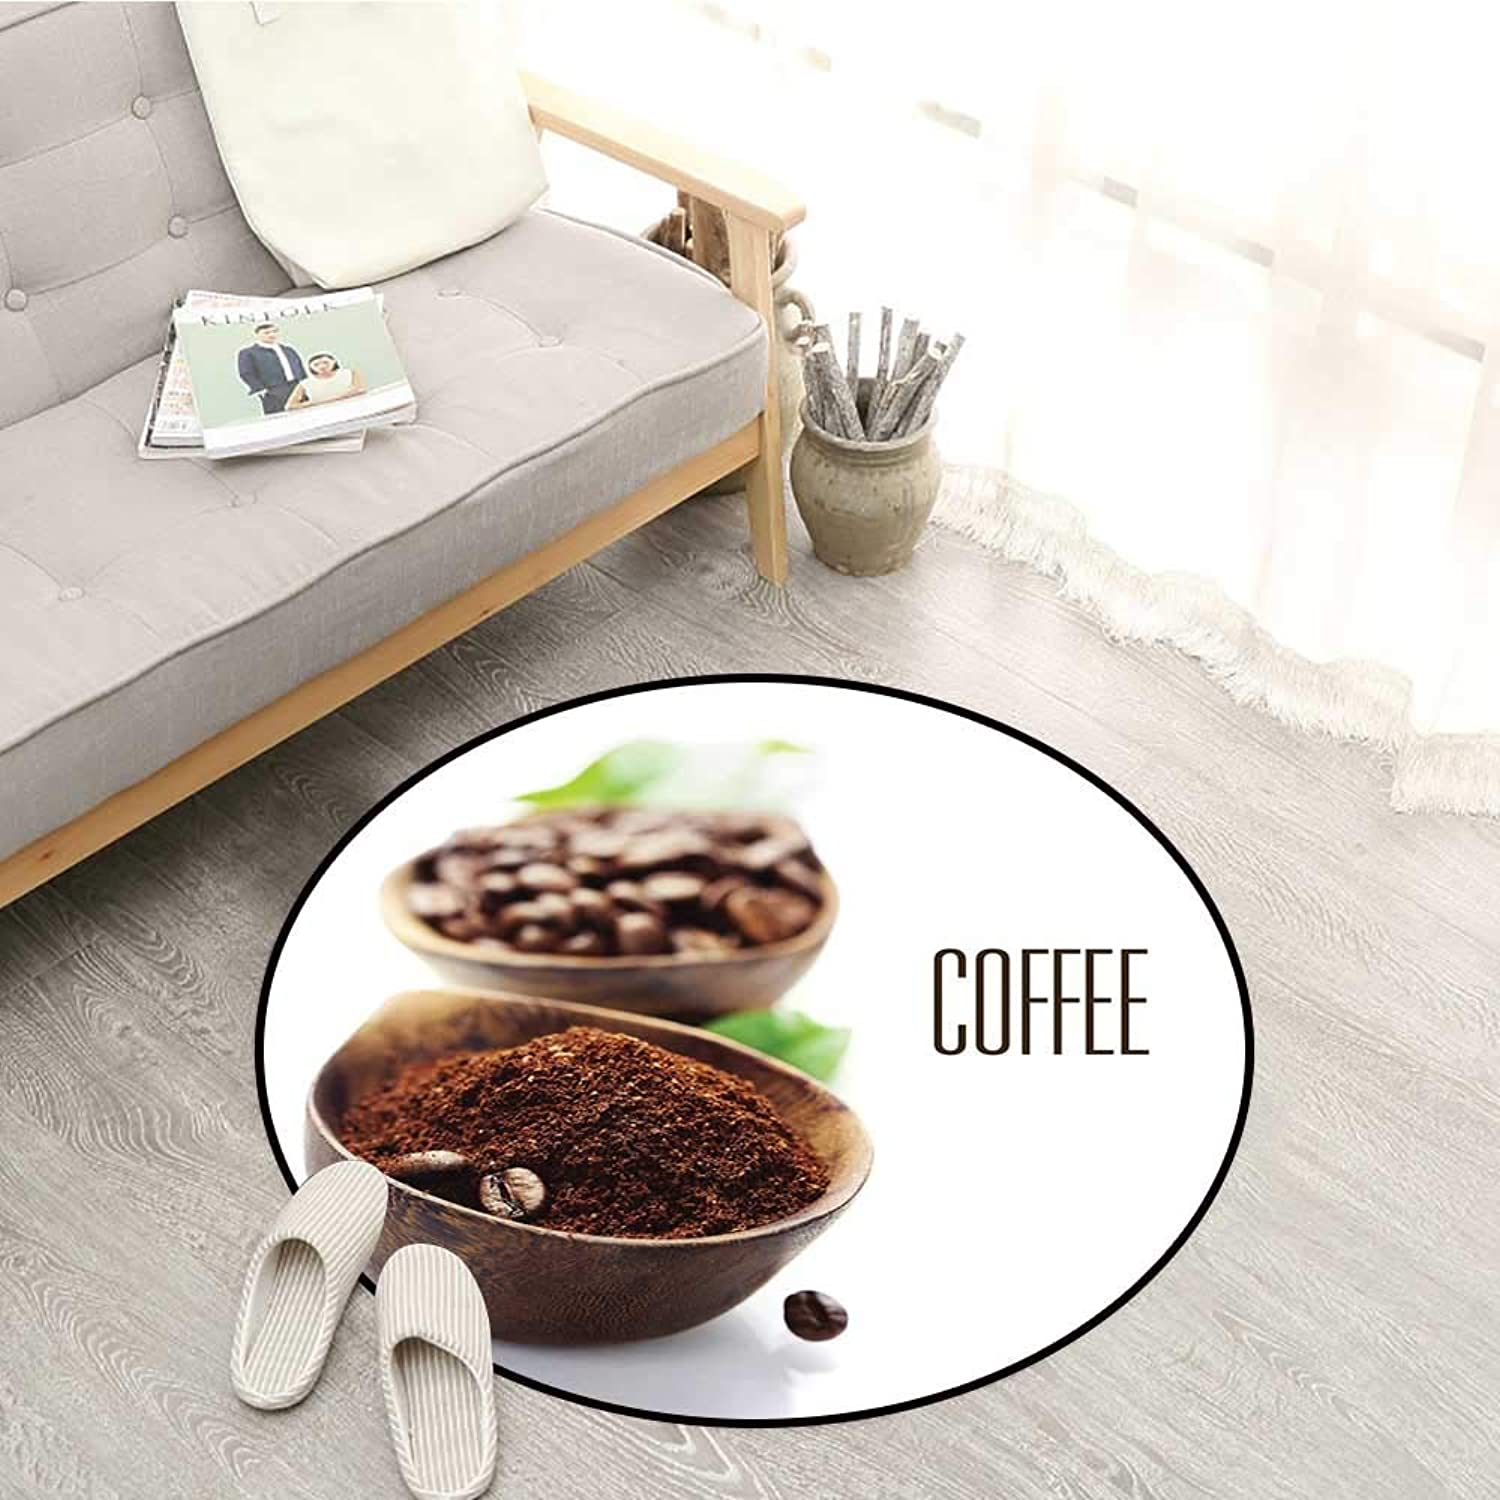 Coffee Skid-Resistant Rugs Ground Coffee in Wooden Bowl Grinding Process Leaf Ingredient Vintage Design Sofa Coffee Table Mat 4'7  Brown Green White